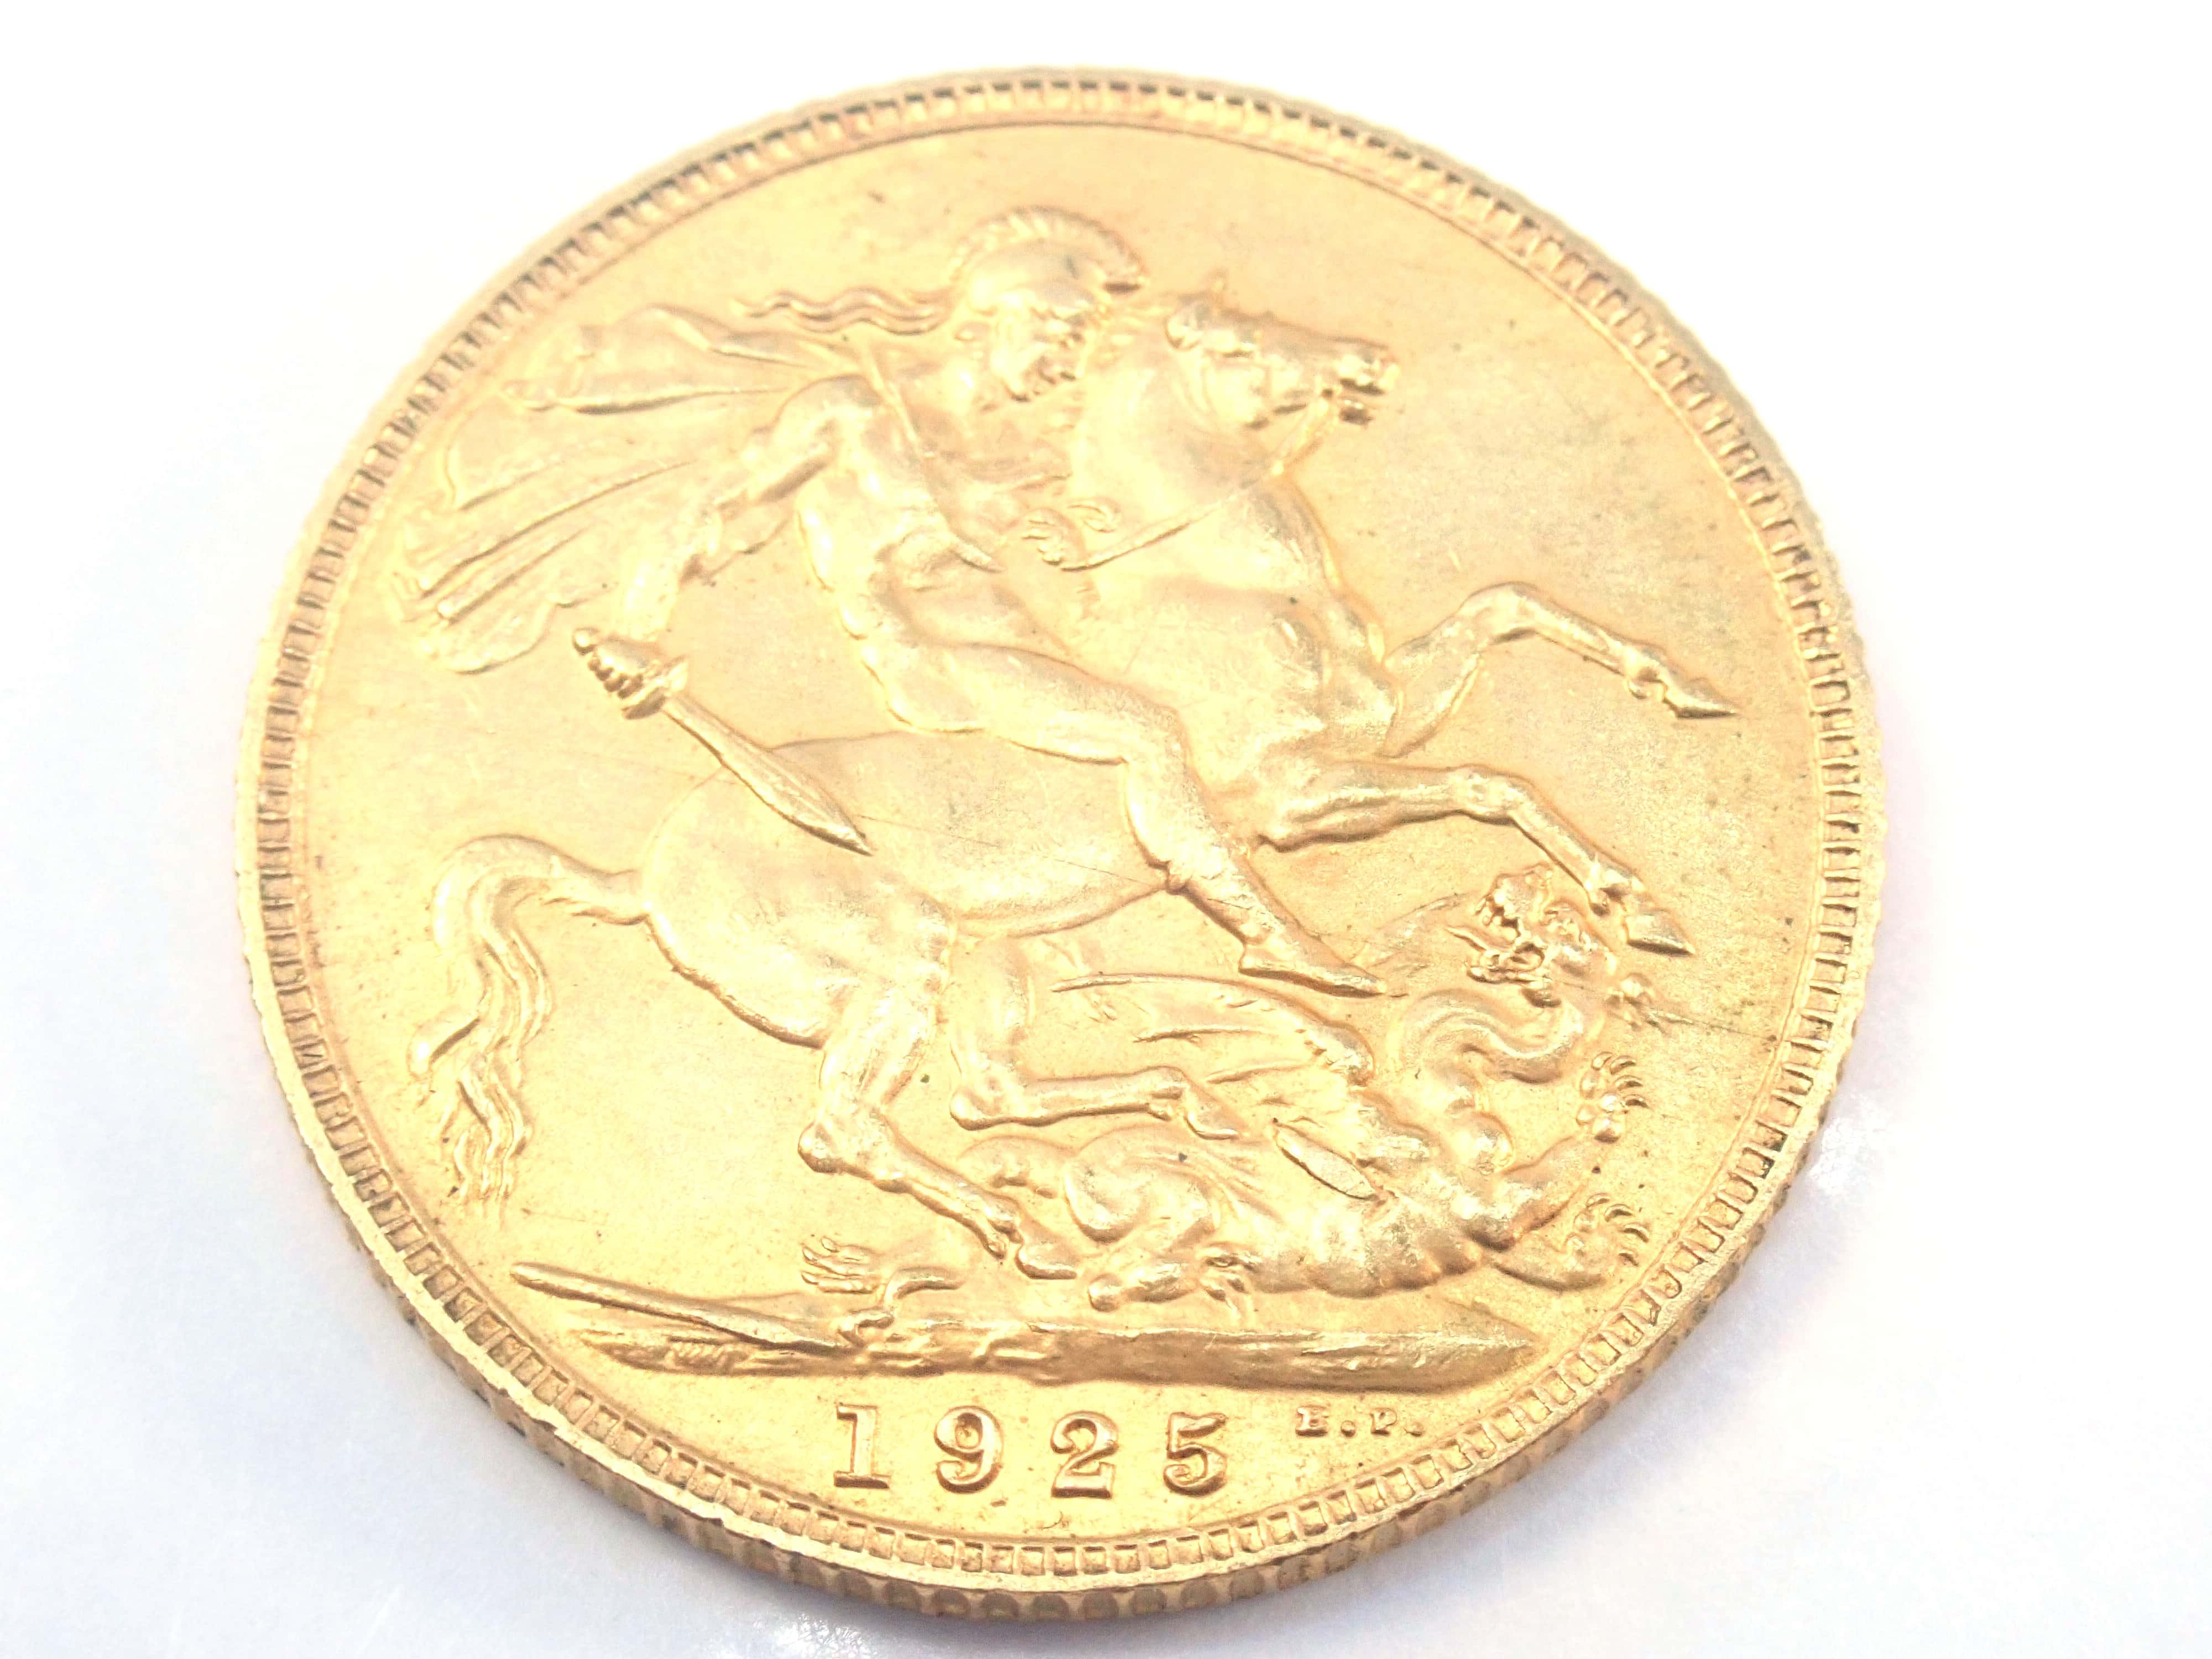 AZZ00875 3 - 1925 22ct Gold Sovereign King George V Coin A.U #557